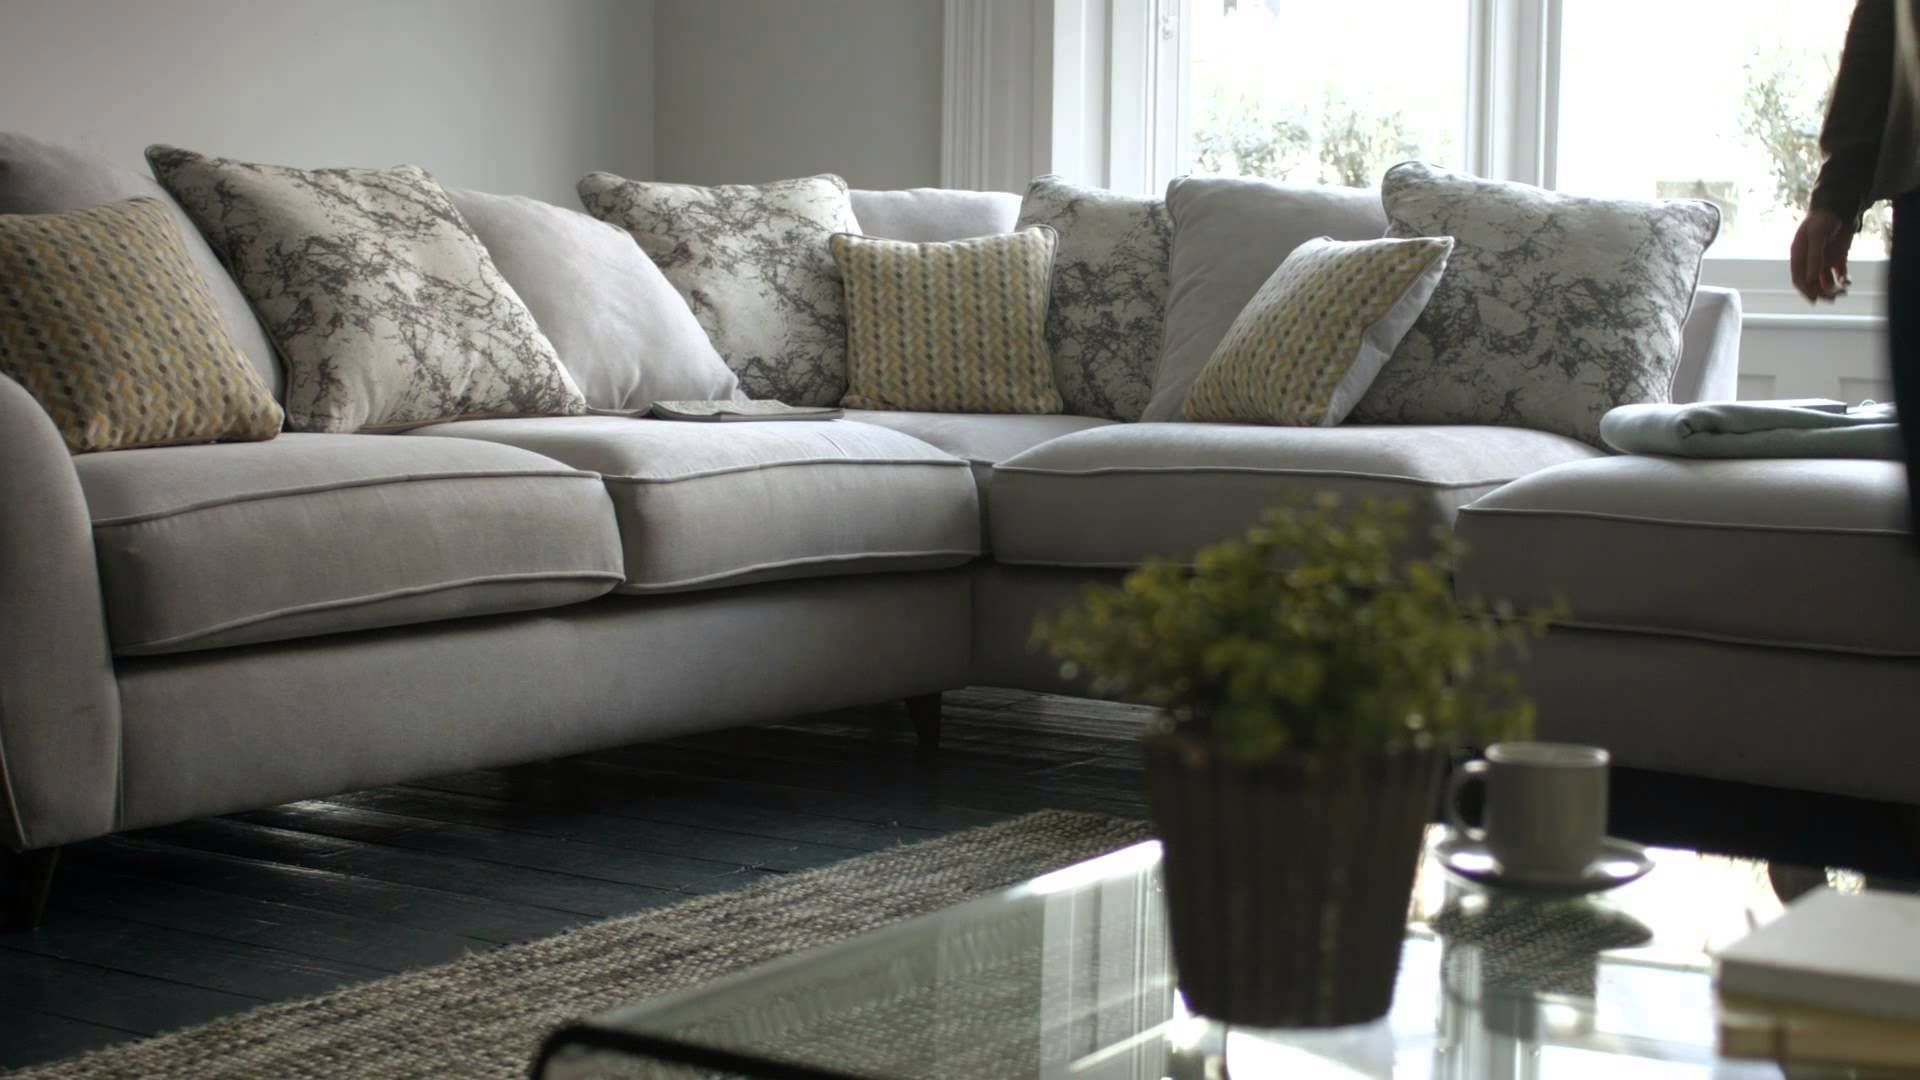 Fabric Modular Sofas & Corner Sofas - Carrara | Furniture Village inside Corner Sofa Chairs (Image 15 of 30)